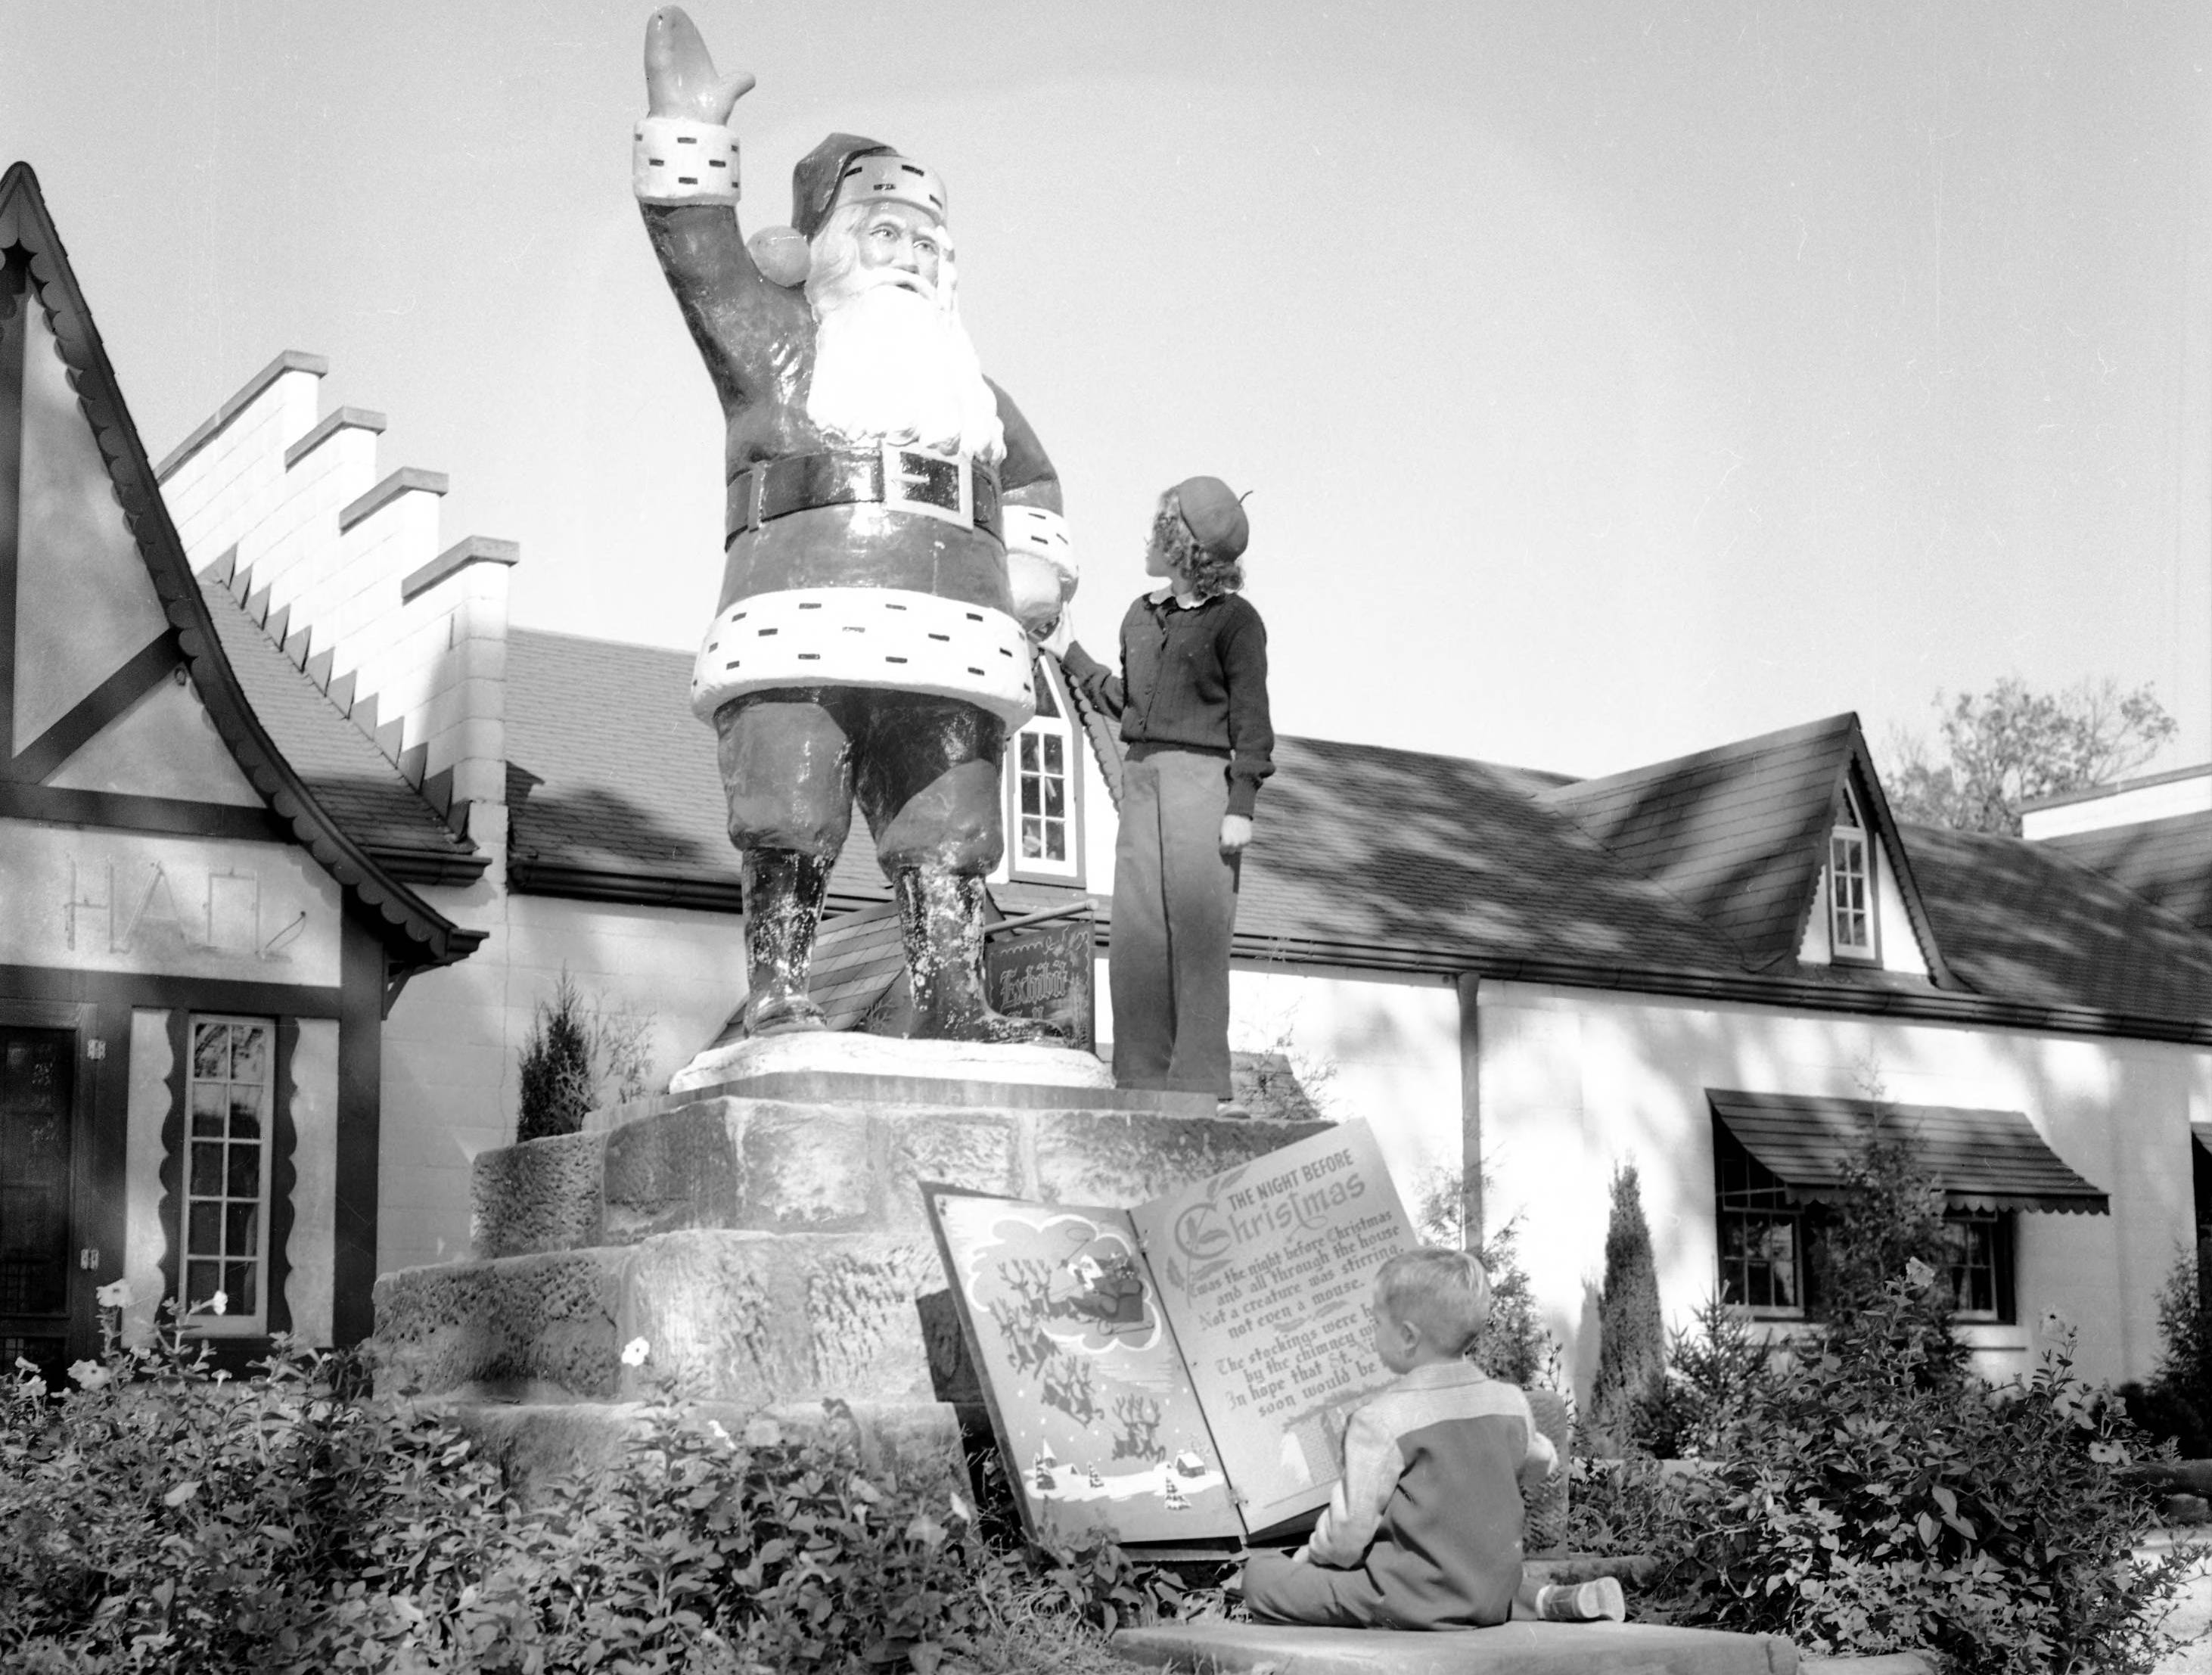 Statue of a waving Santa Claus, with a young girl touching his hand.  In front is a extra large copy of Clement Clarke Moore's  A Visit from St. Nicholas, also known as The Night Before Christmas, with a young boy sitting in front of it, reading.  The Exhibit Hall portion of the village is behind the statue in 1949. Taken at Santa Claus Land, now known as Holiday World & Splashin' Safari.